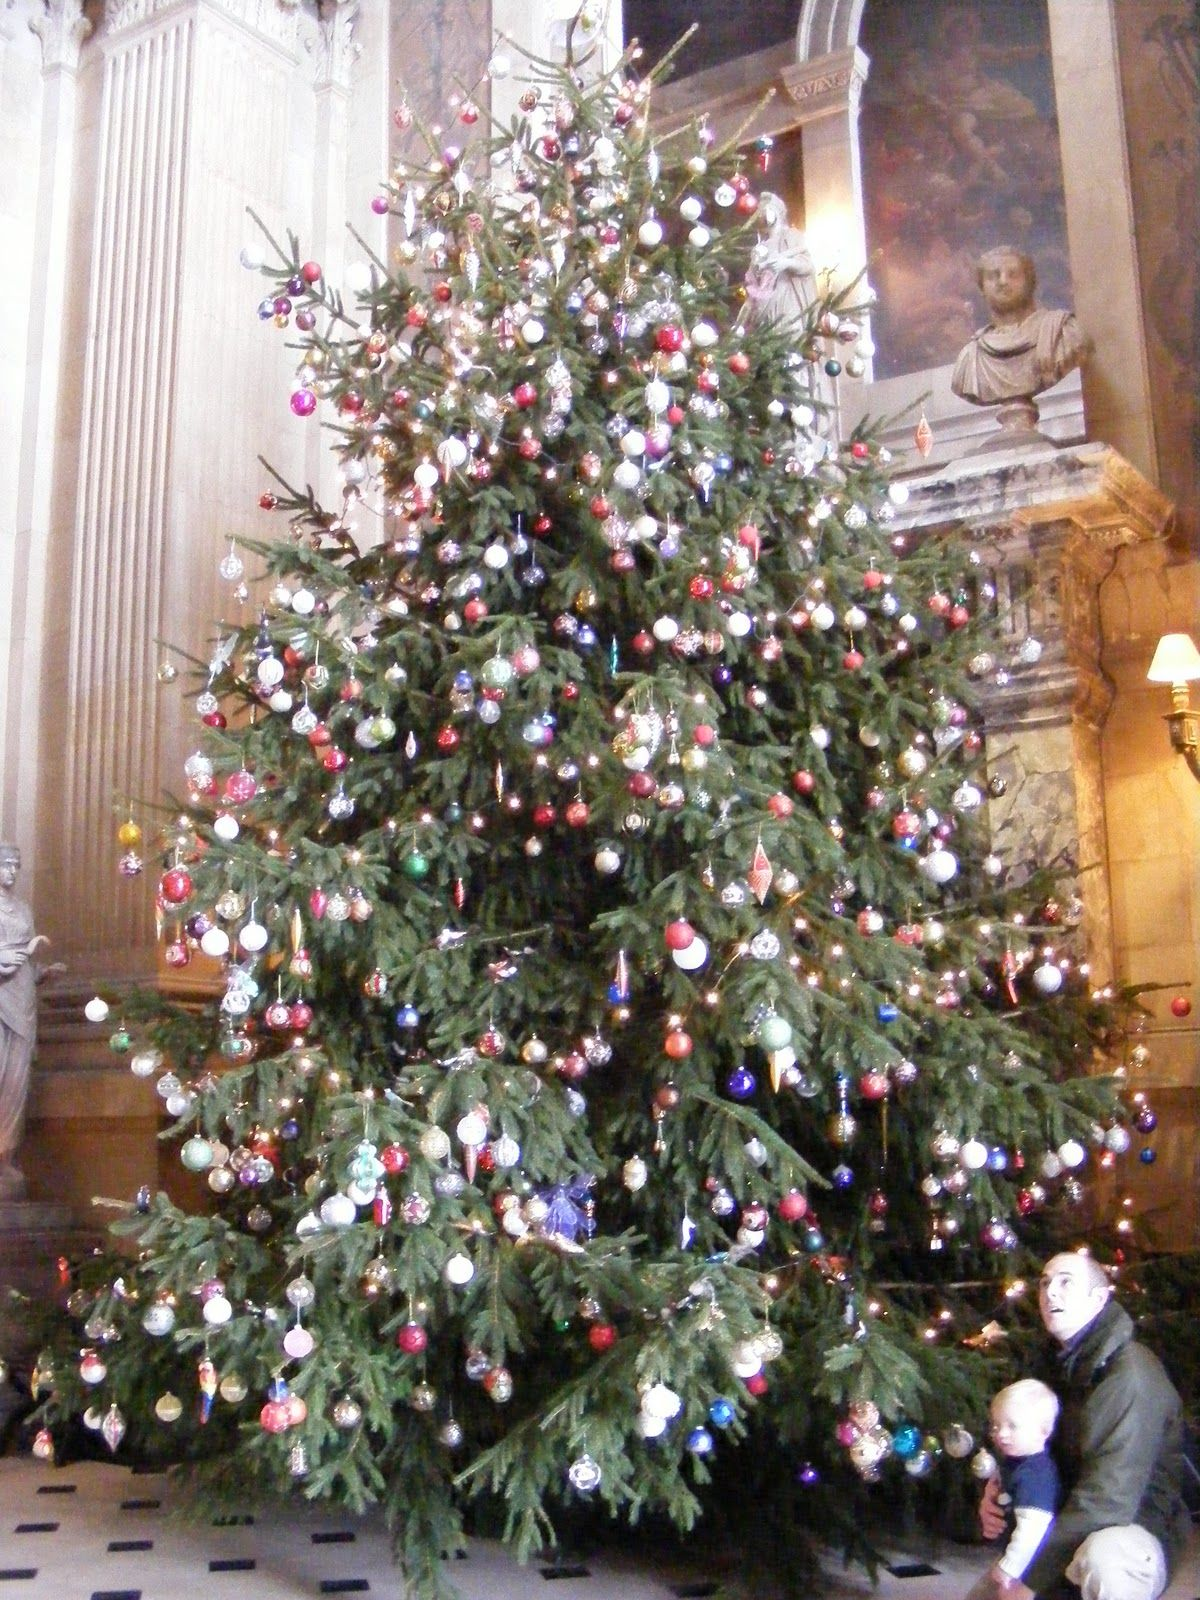 Whew A Huge Christmas Tree Laden With Ornaments Blenheim Palace Natalie Cole Sleigh Ride Tis The Season To Be Jolly Christmas Sleigh Ride